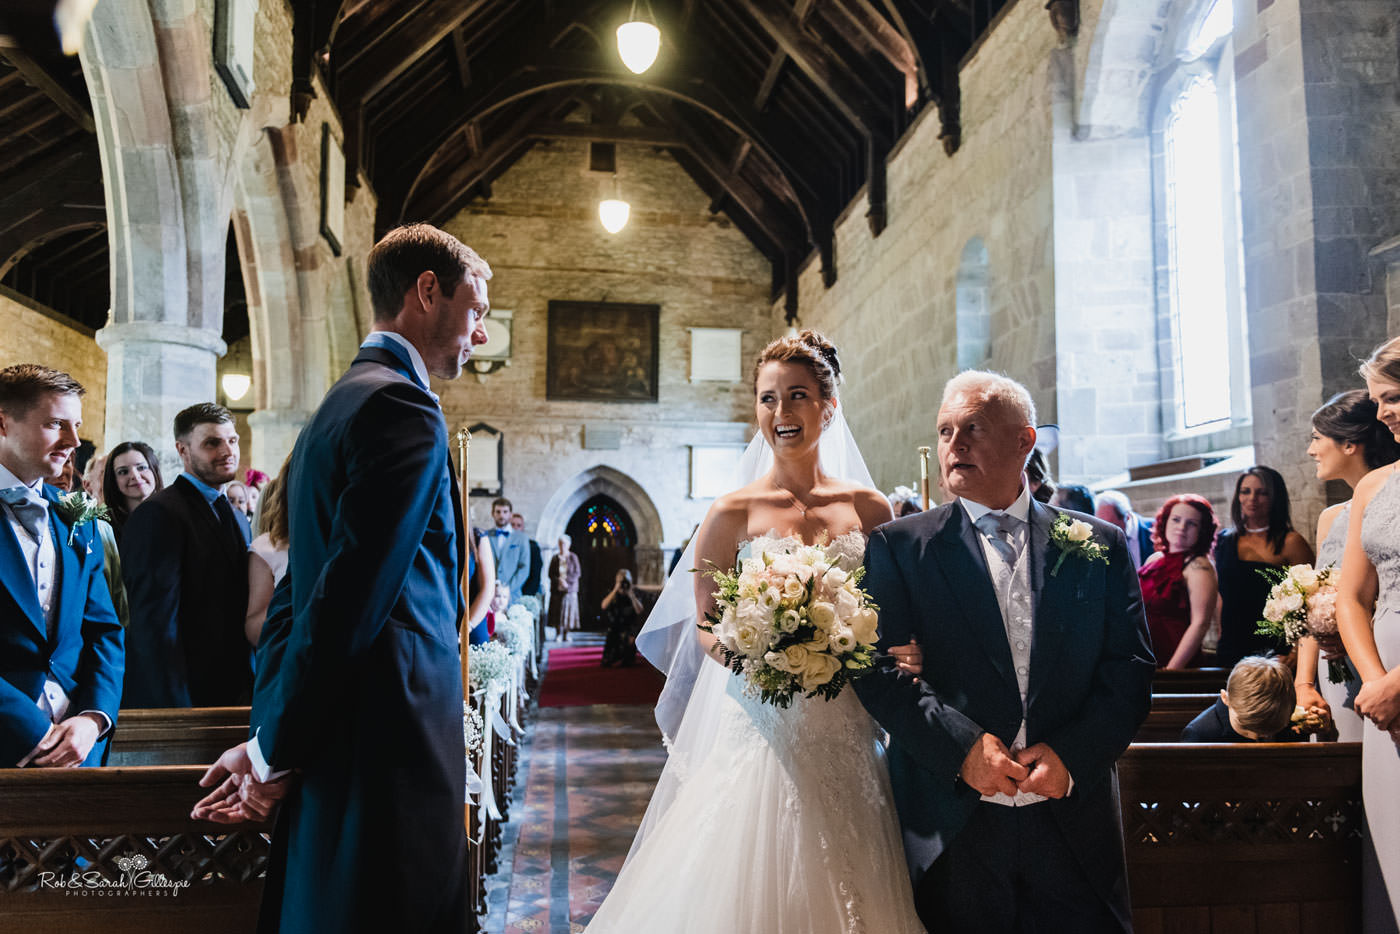 Bride and dad enter wedding ceremony as groom watches